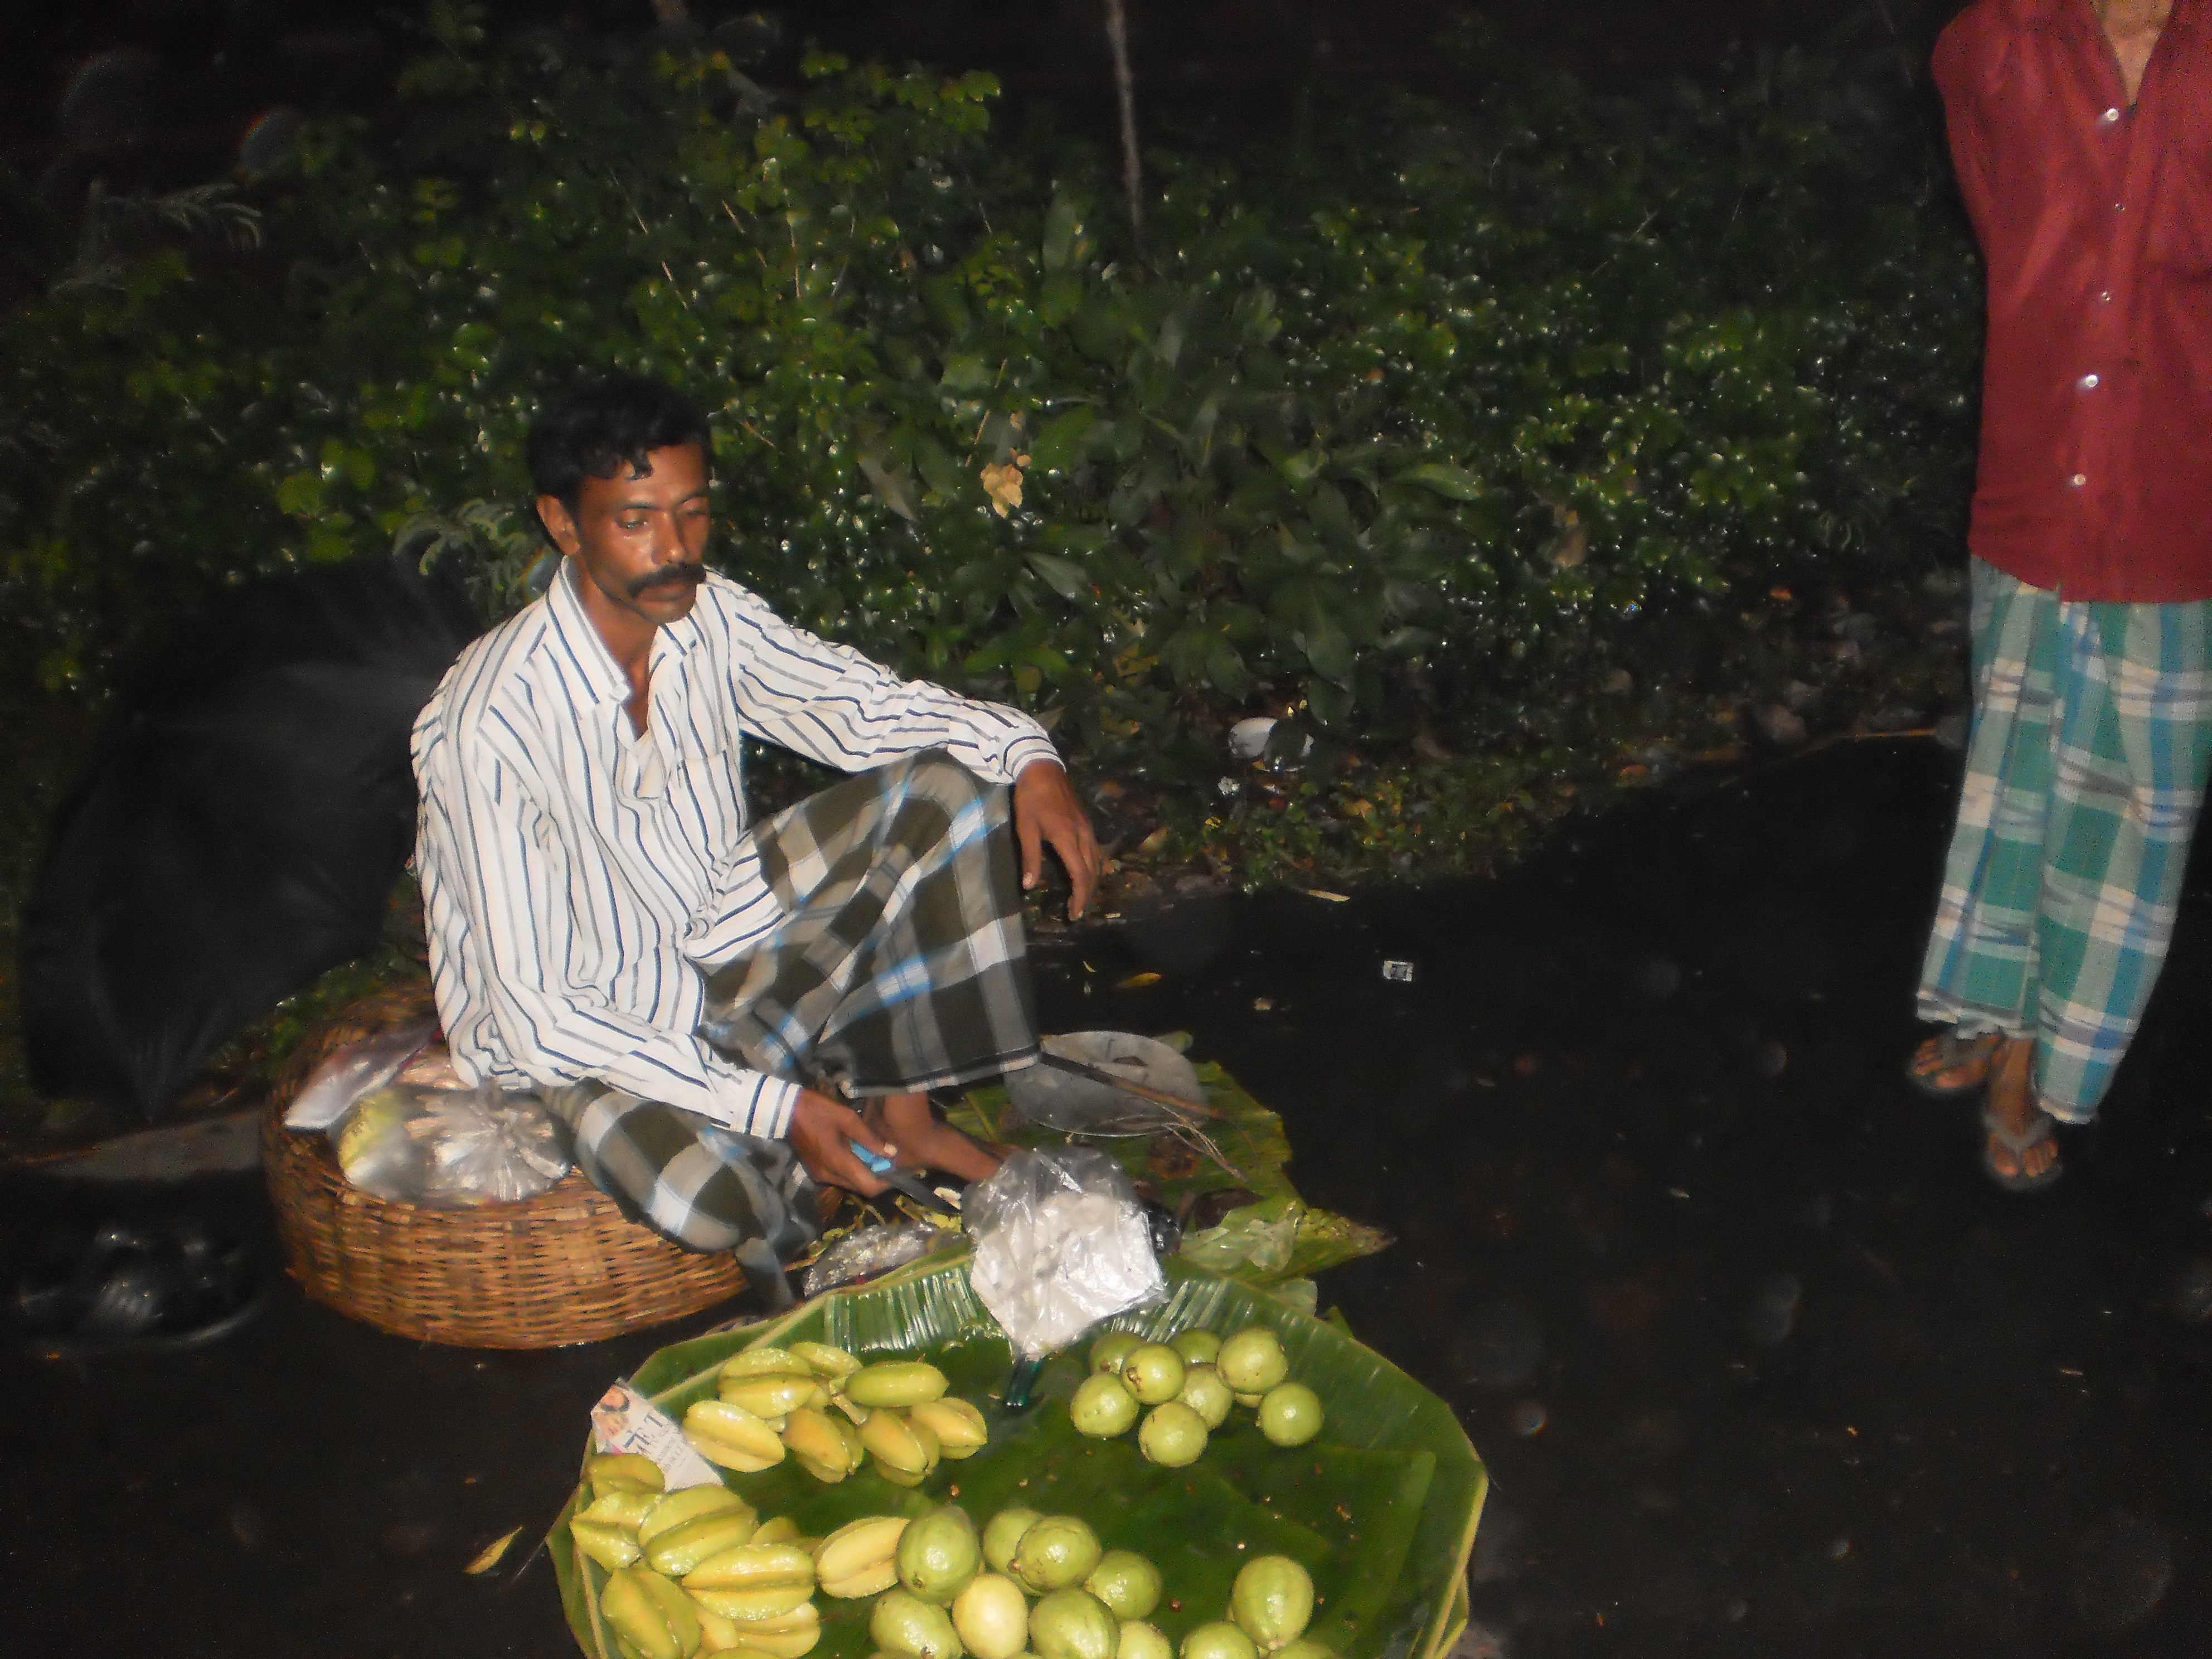 Selling fruits at exorbitantly high prices.